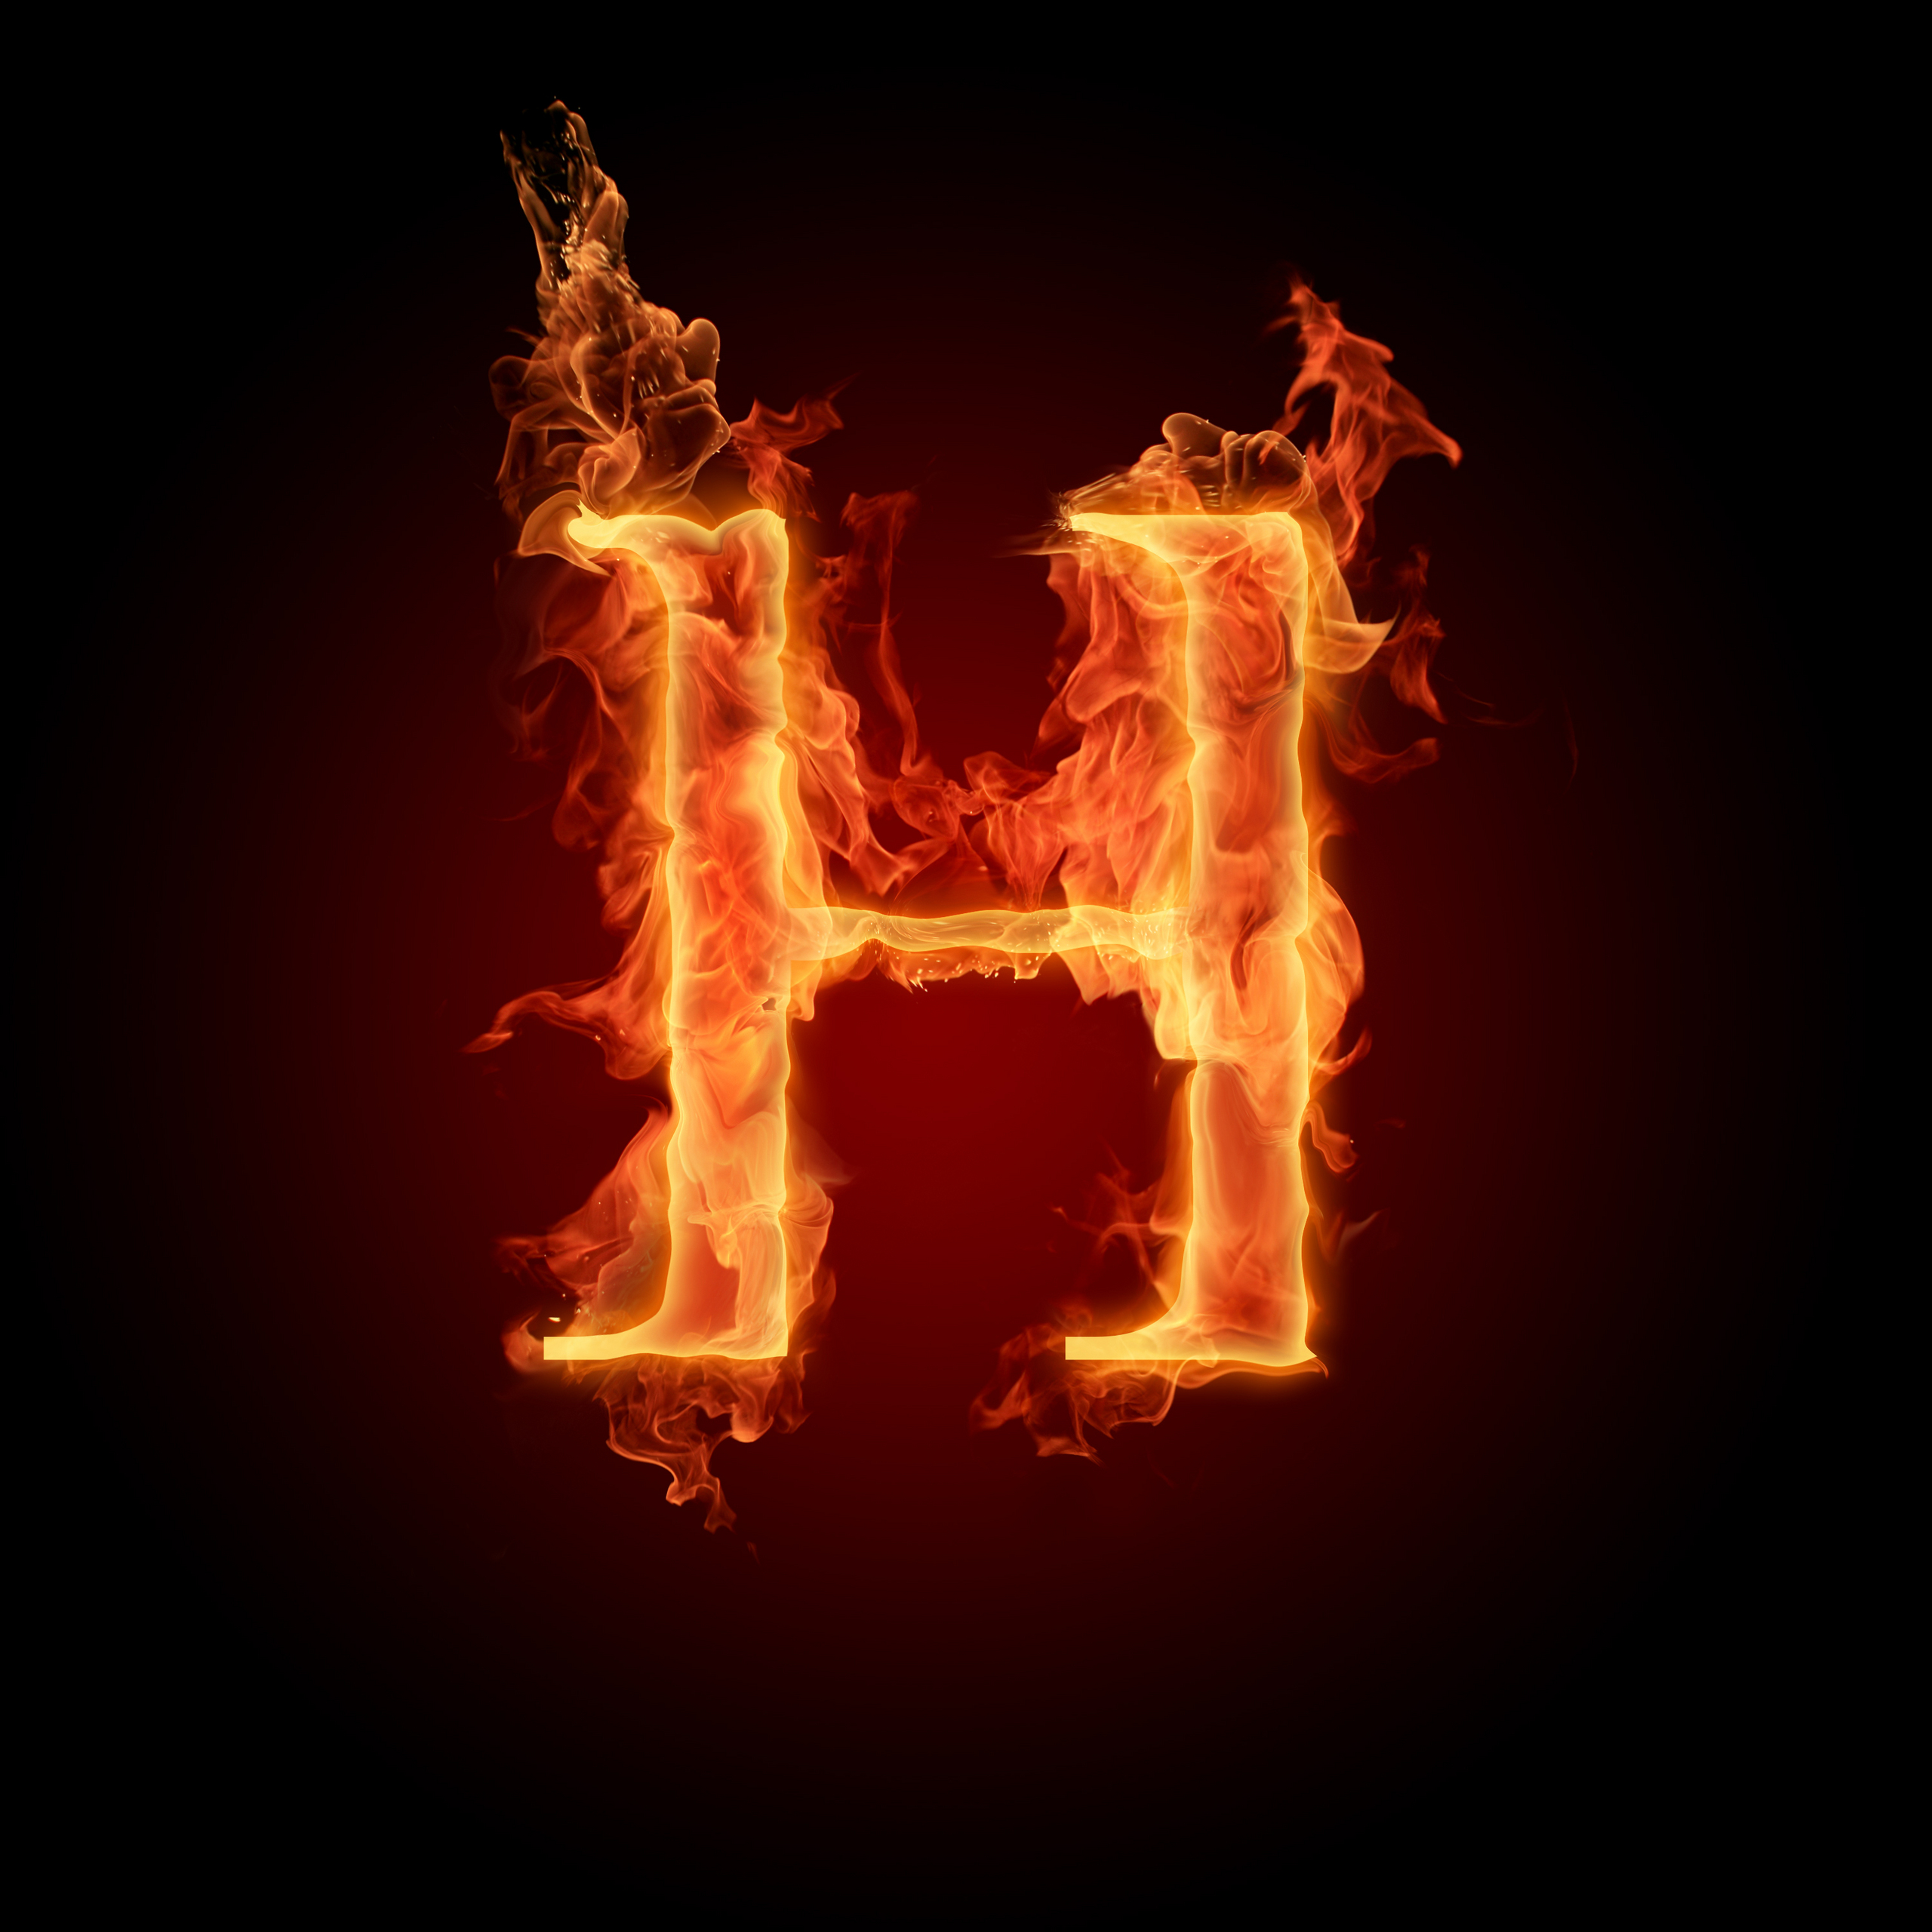 The Letter H Images The Letter H HD Wallpaper And Background Photos